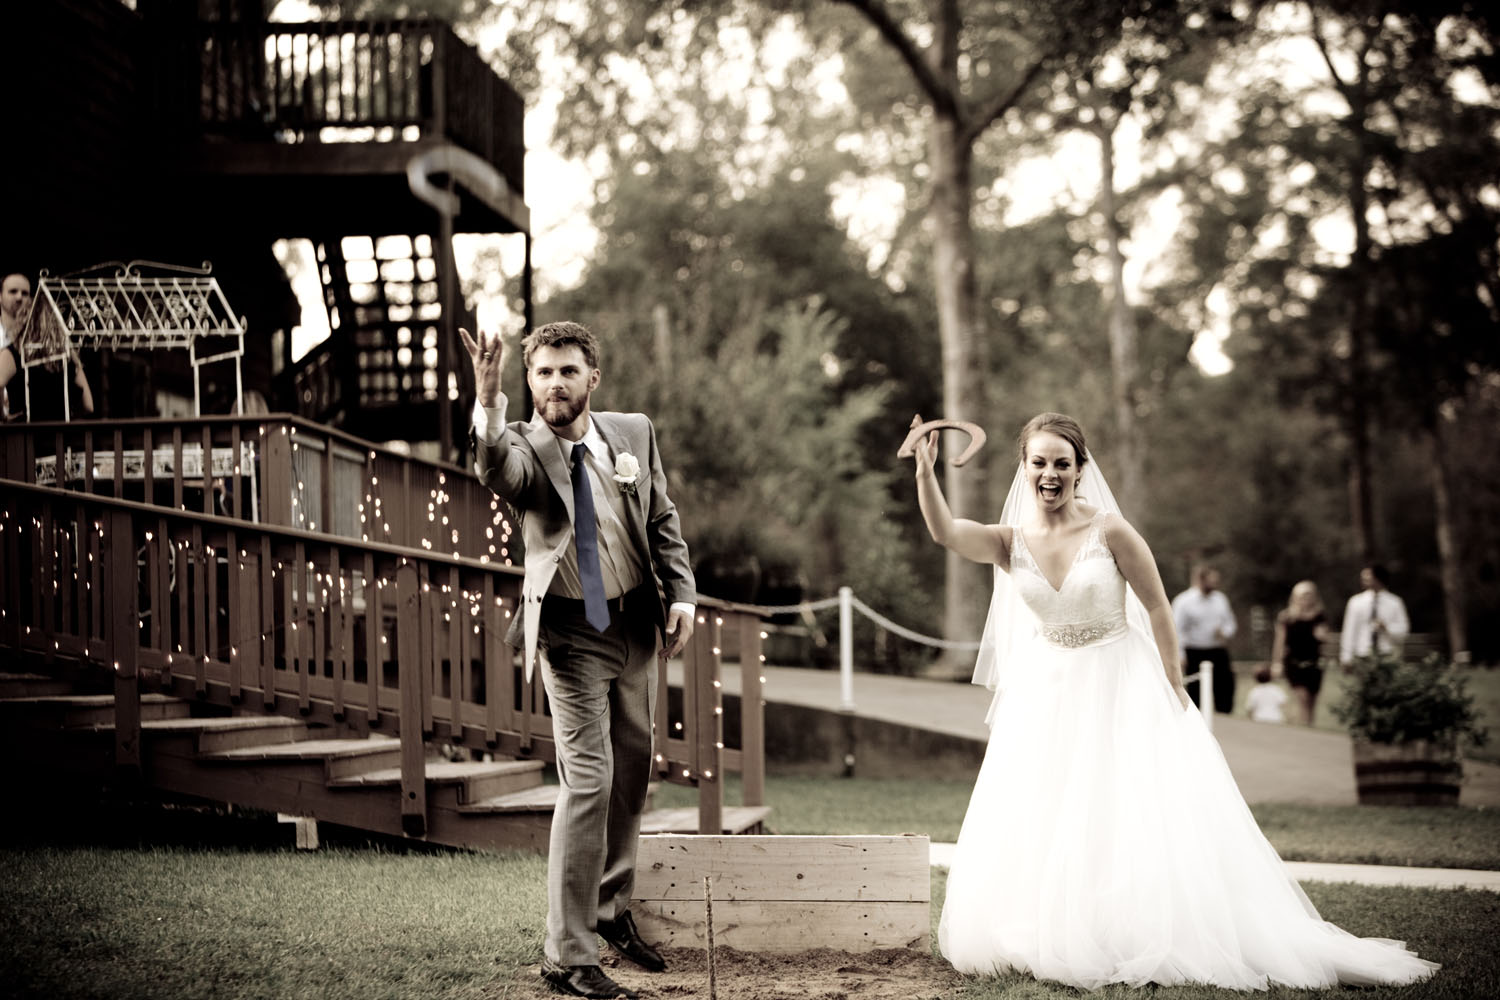 A bride and groom having a friendly game of horseshoes just off the deck.